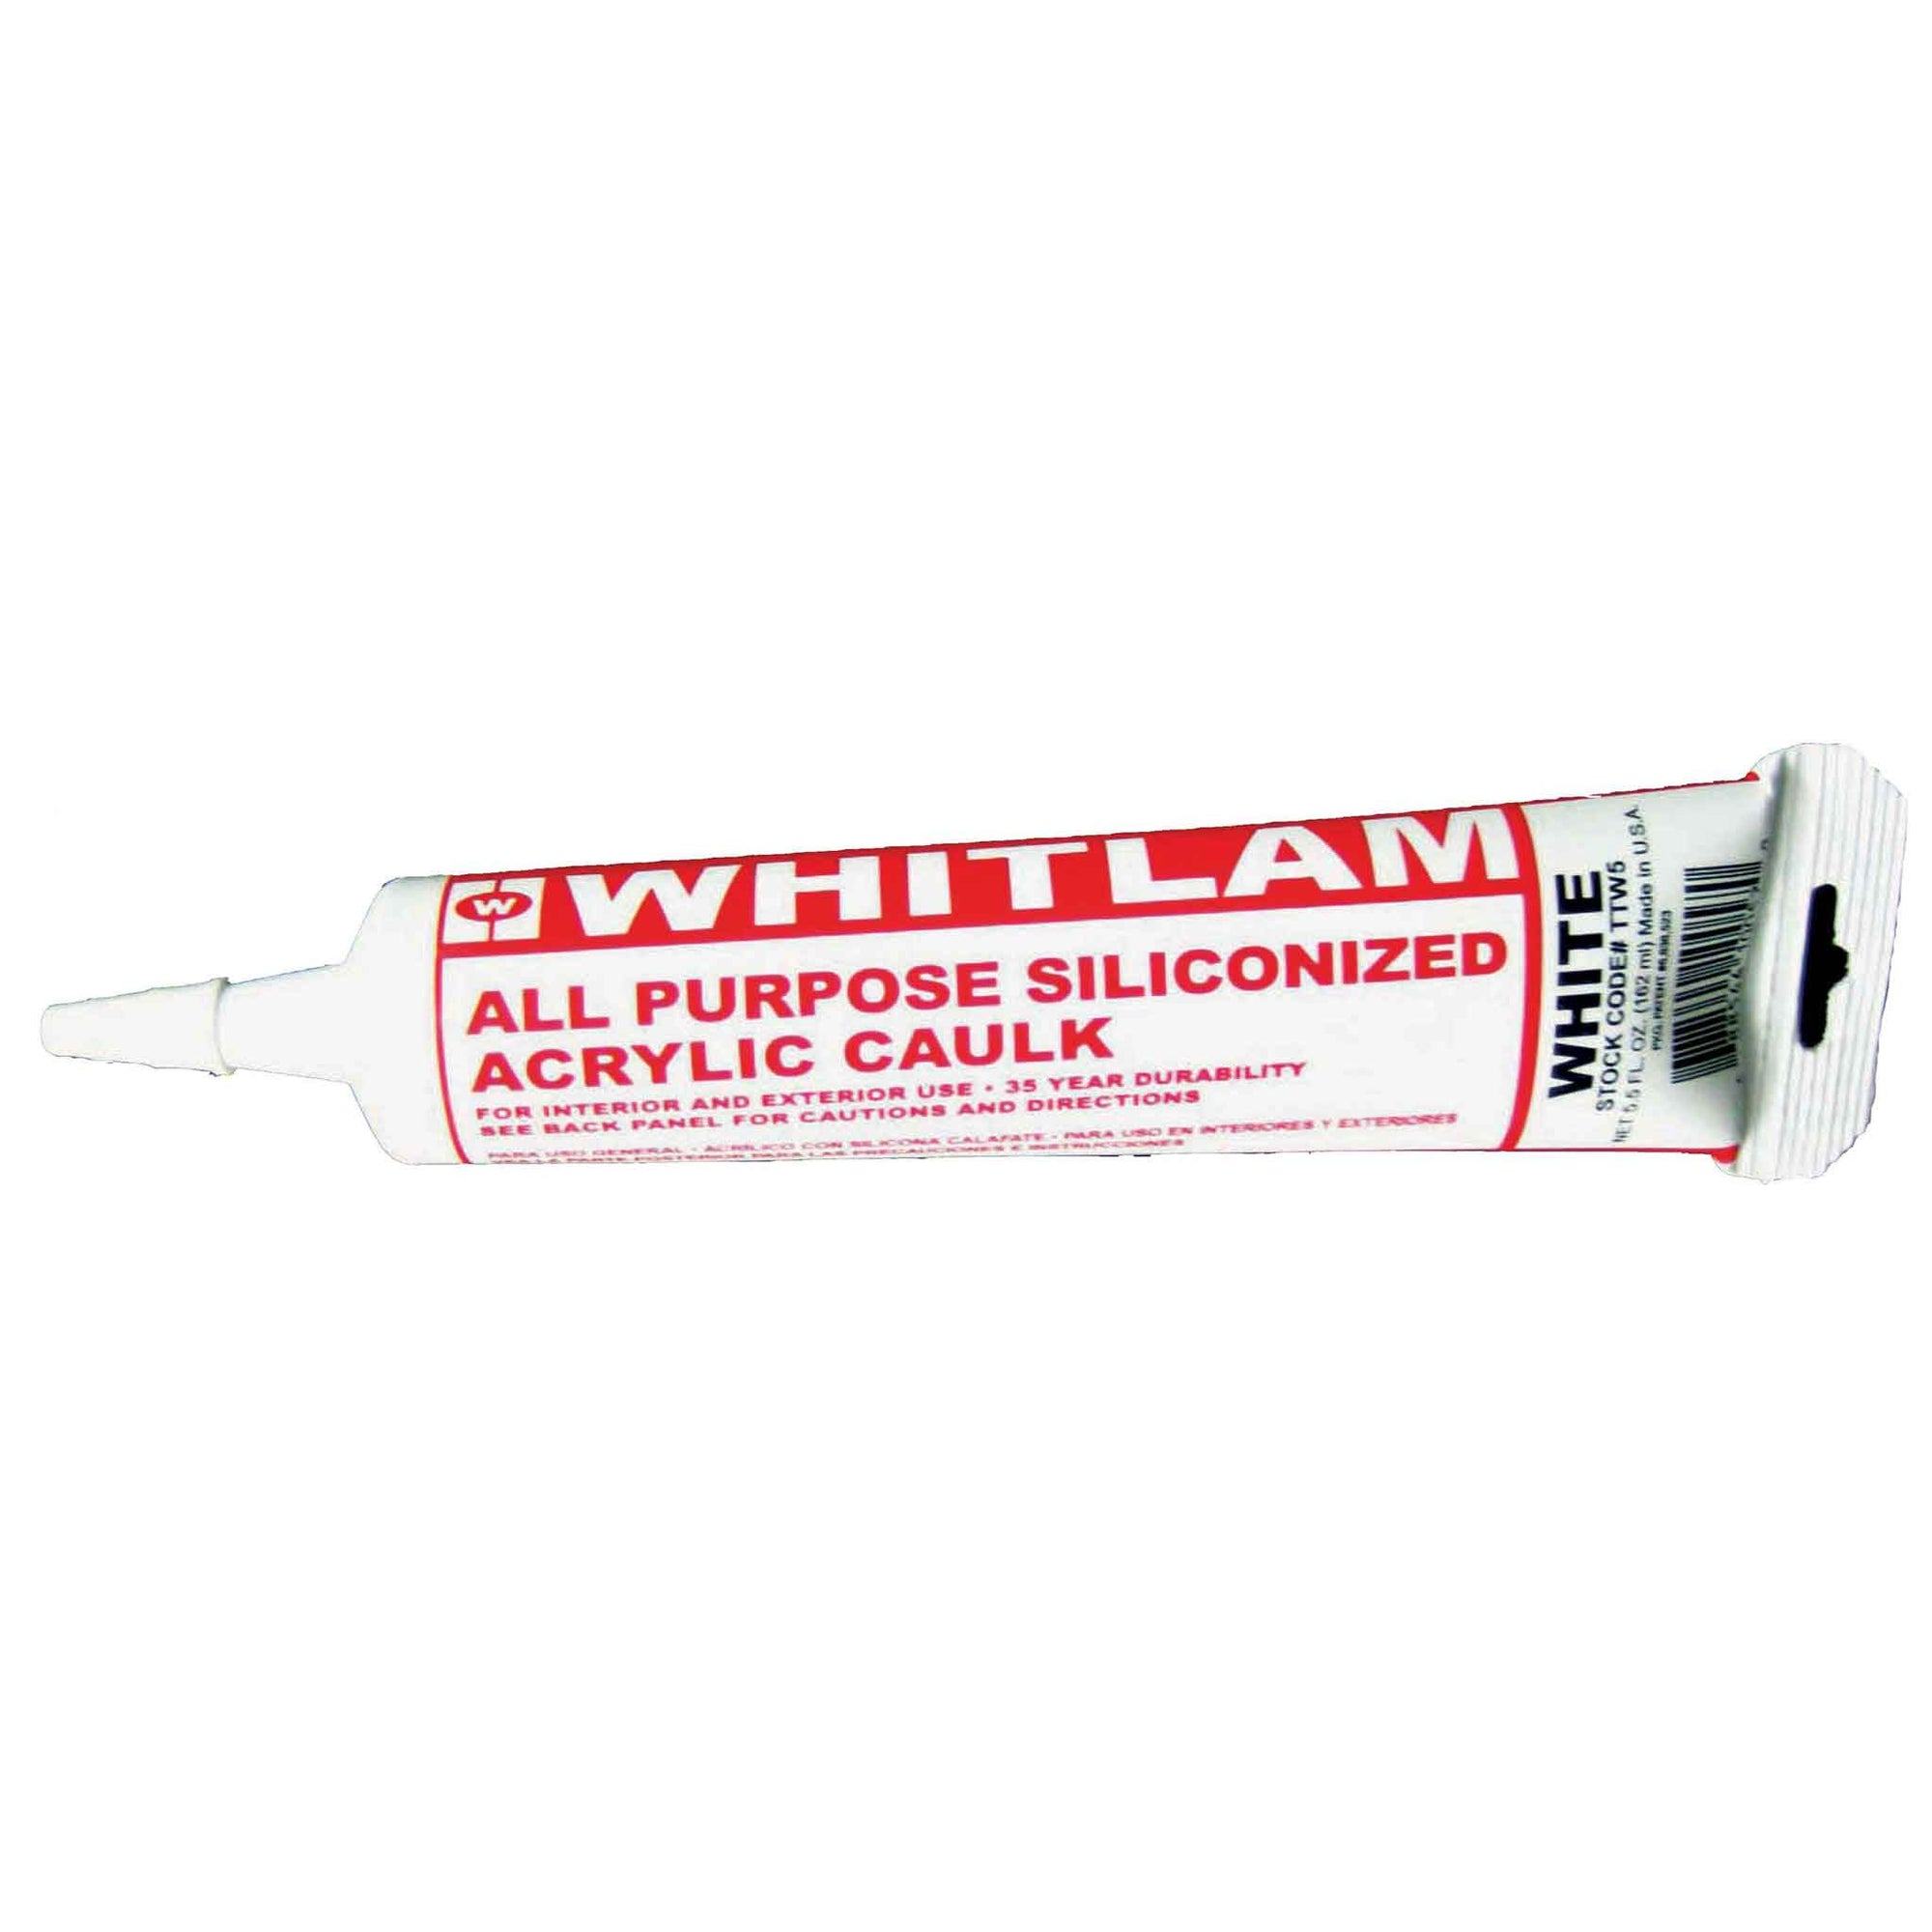 ALL PURPOSE WHITE SILICONIZED ACRYLIC CAULK